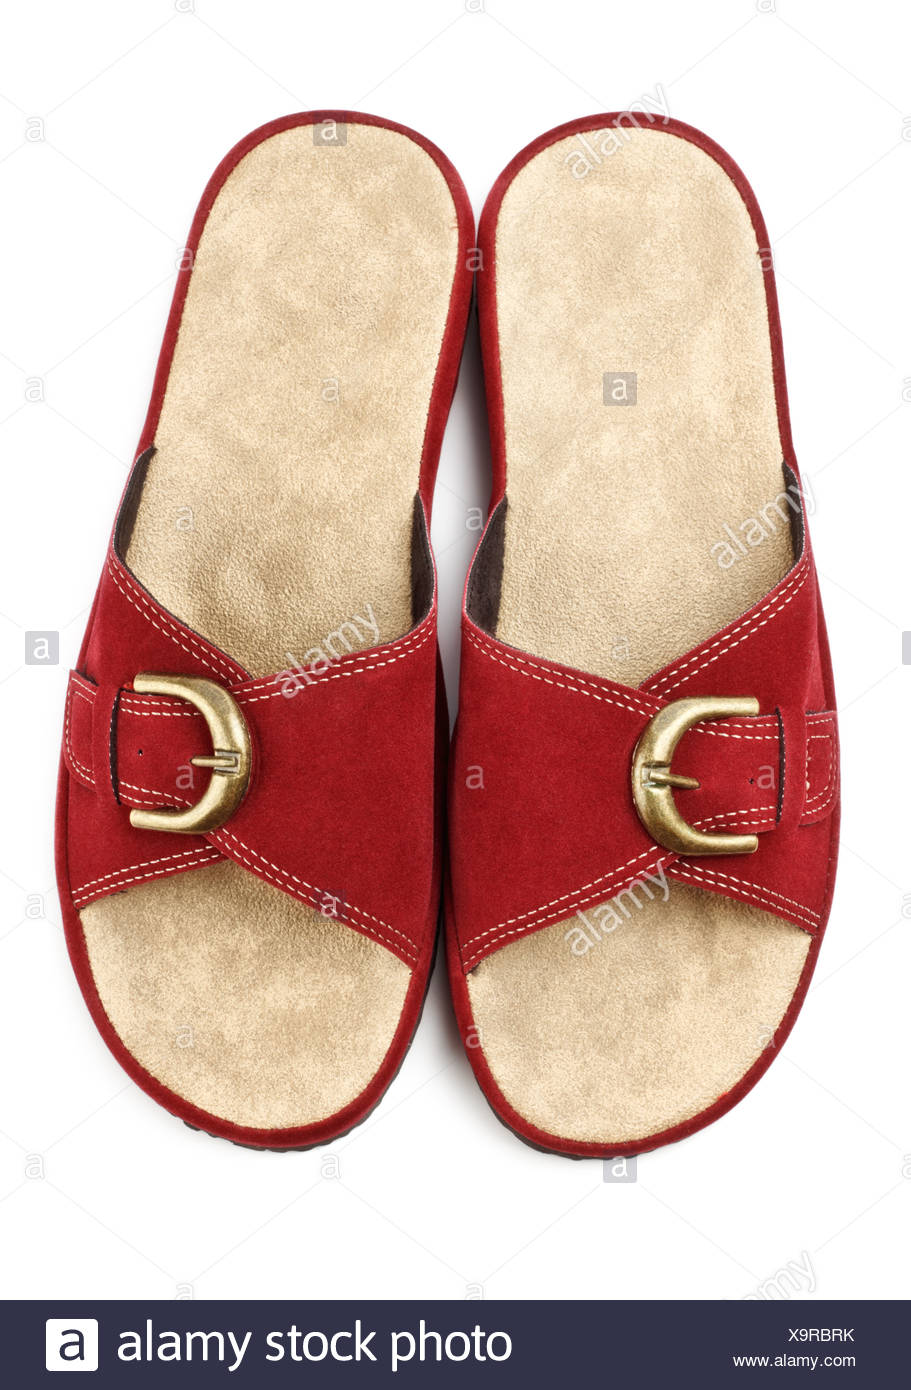 7c7176fef04 red slippers Stock Photo  281411975 - Alamy